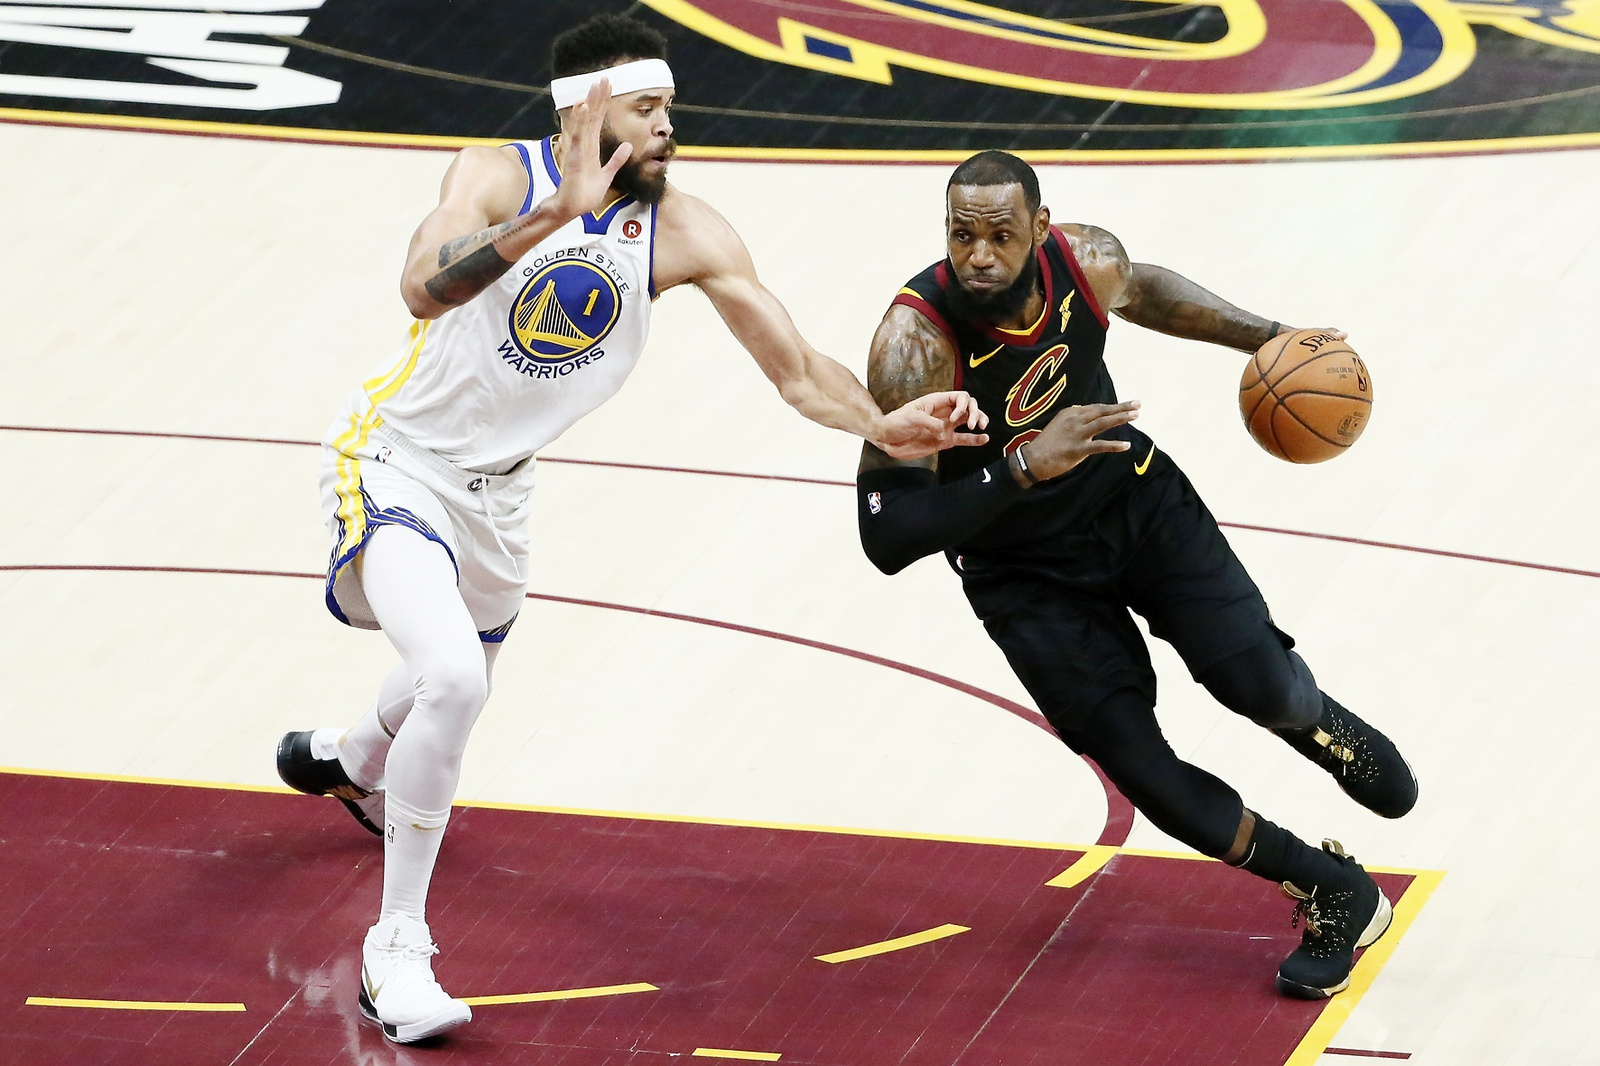 LeBron James #23 of the Cleveland Cavaliers handles the ball against JaVale McGee #1 of the Golden State Warriors in Game Four of the 2018 NBA Finals won 108-85 by the Golden State Warriors over the Cleveland Cavaliers at the Quicken Loans Arena on June 6, 2018 in Cleveland, Ohio.